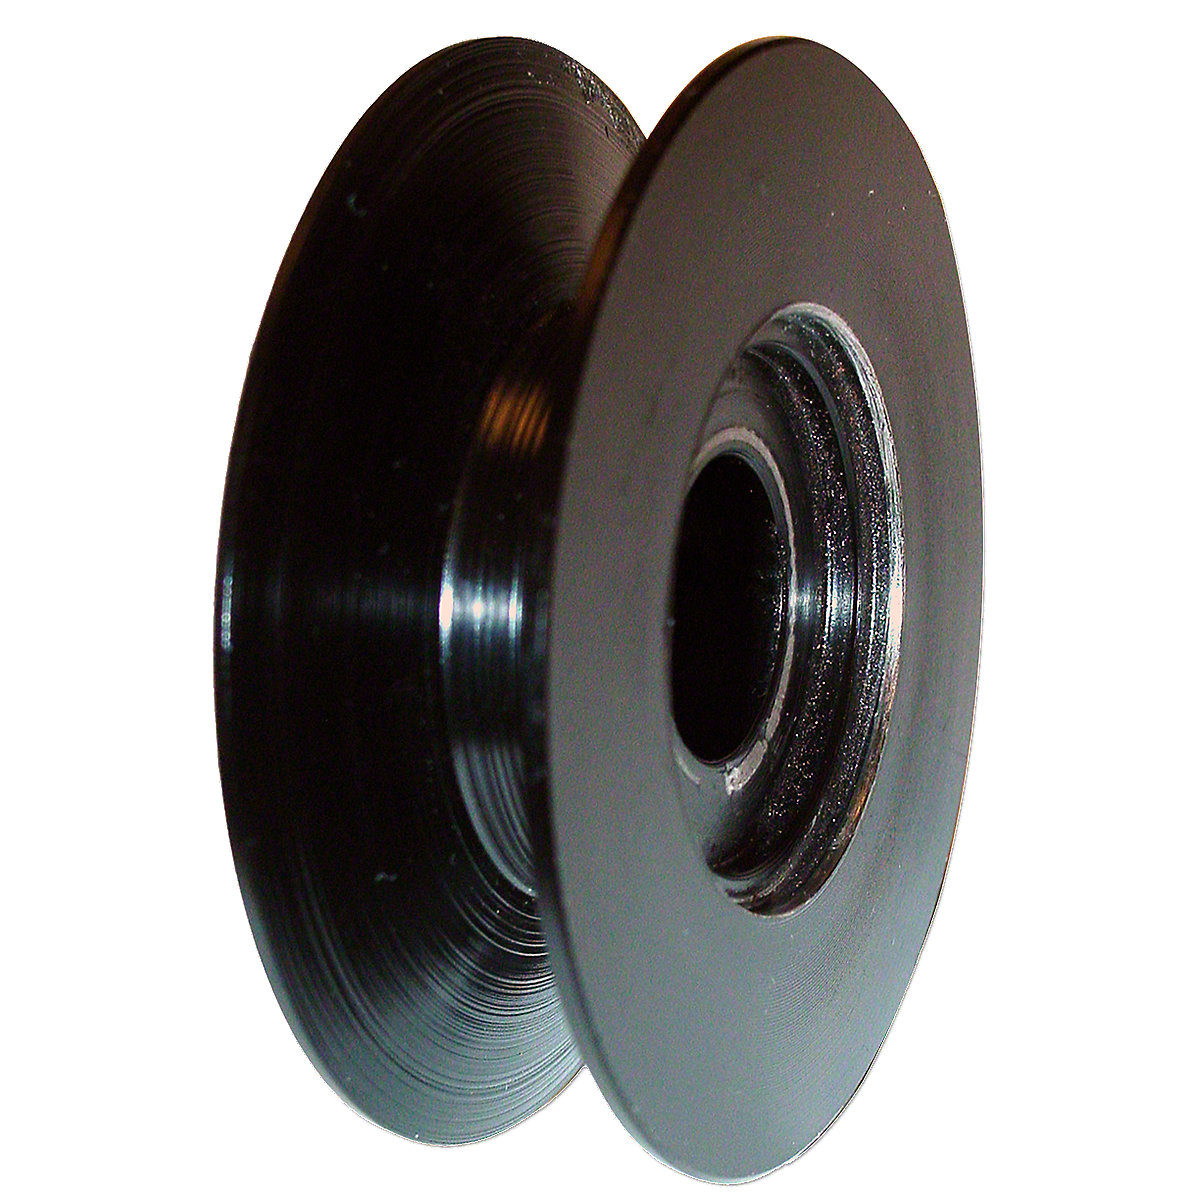 Alternator Pulley For Allis Chalmers Tractors.